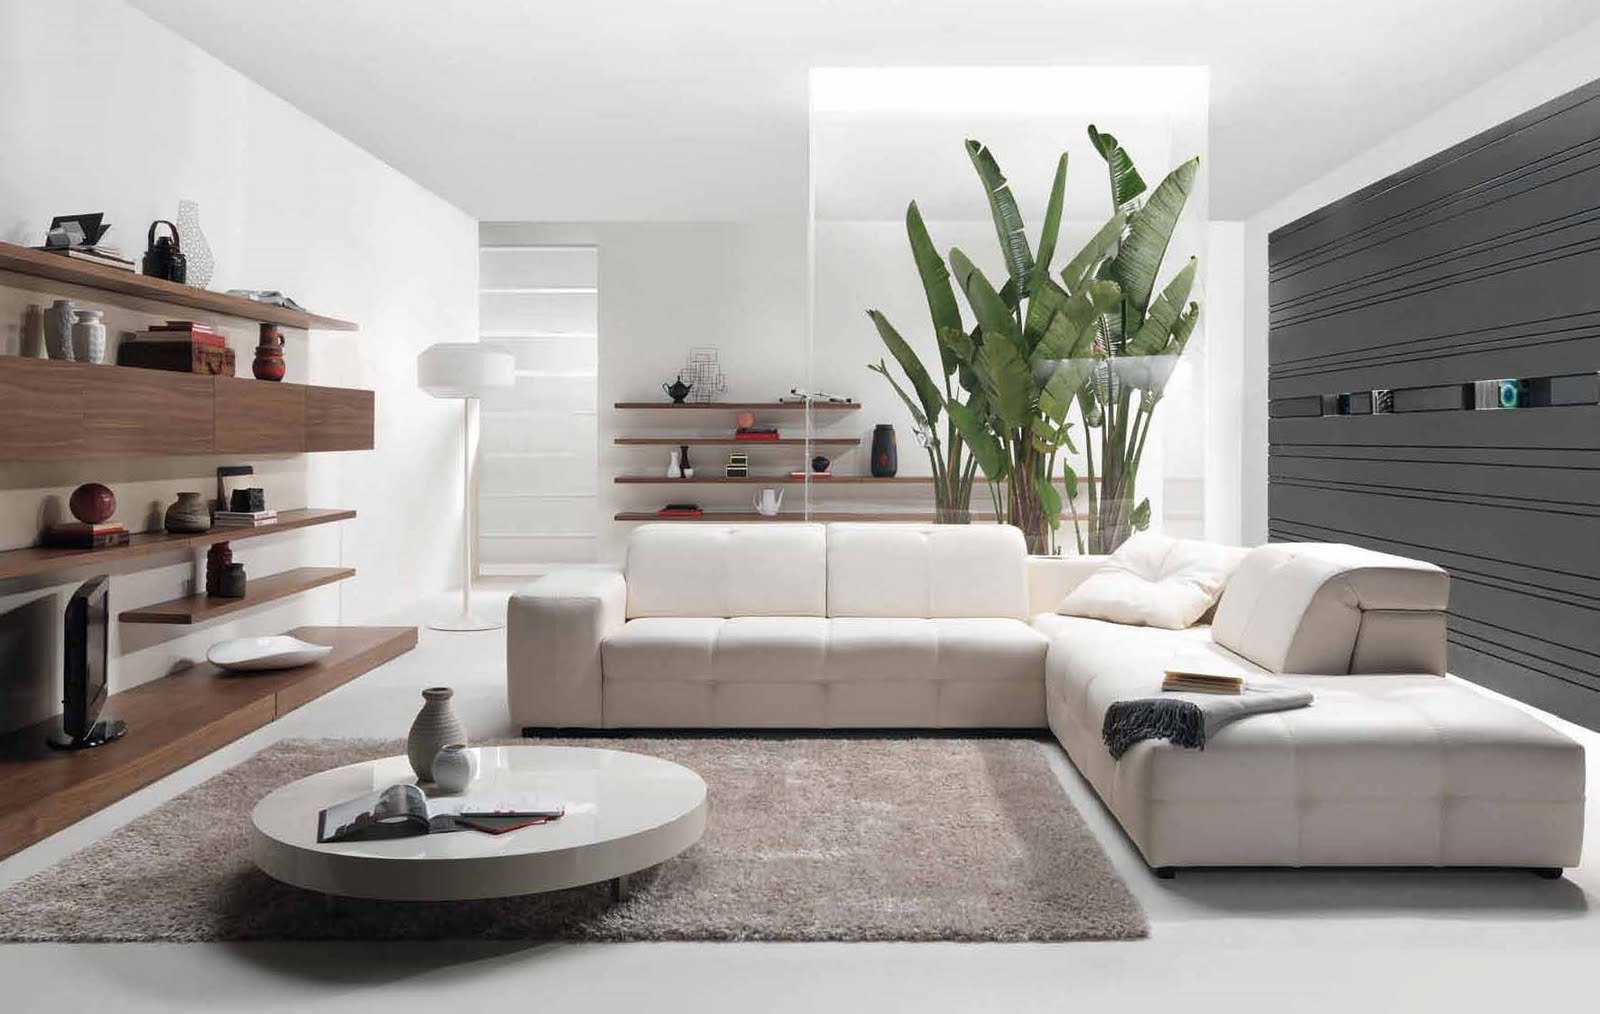 35 Contemporary Living Room Design - The WoW Style on Living Room Decor  id=23796